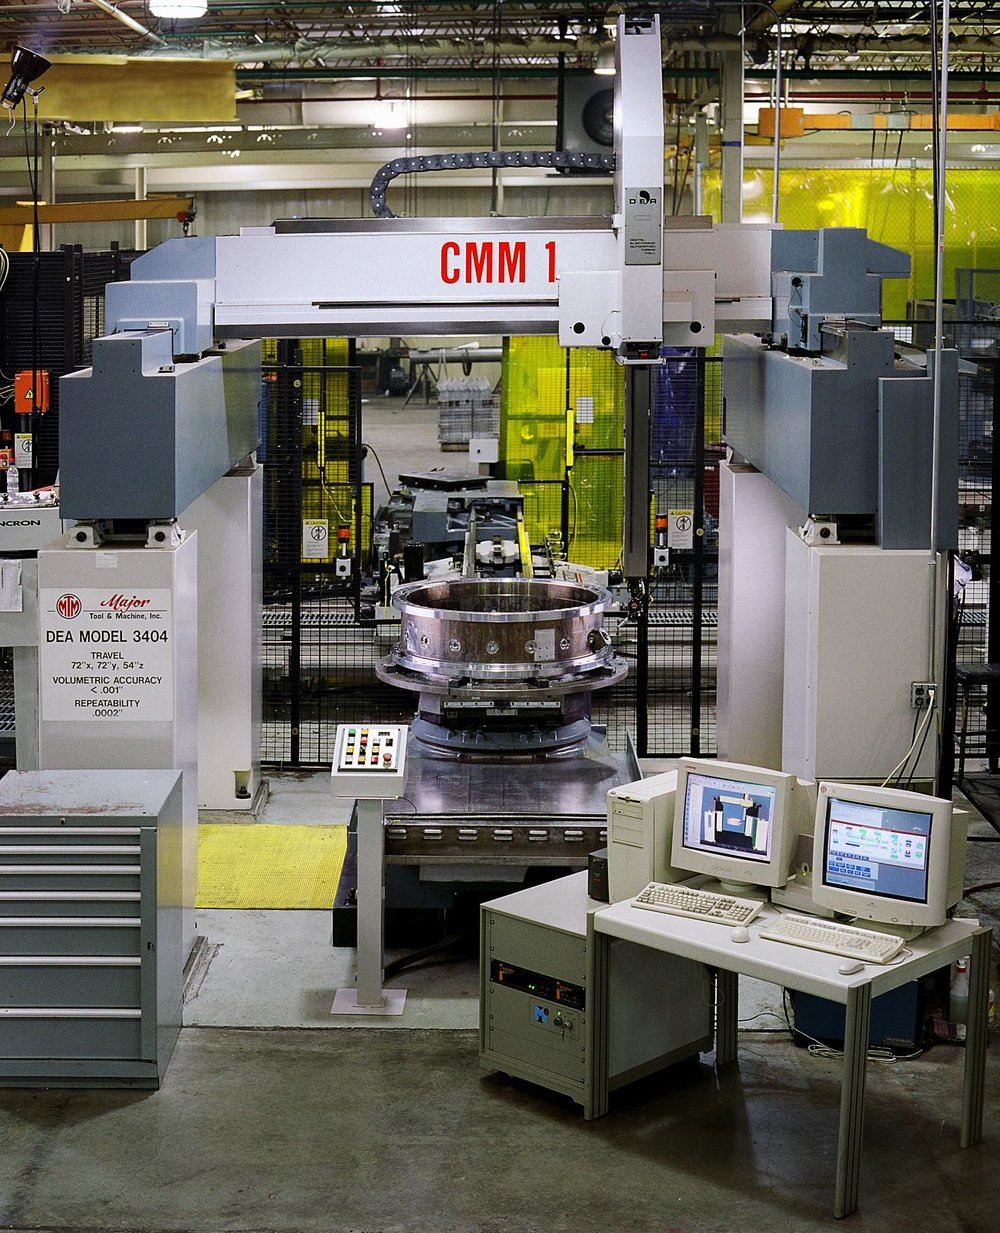 Flexible Manufacturing Cell - CMM   4X, Cincinnati Milacron T35 N, 5-axis, twin pallet  2X, Giddings & Lewis VTC 1600 Lathes  1X, Integrated CMM  2X, Integrated Load/Unload Stations